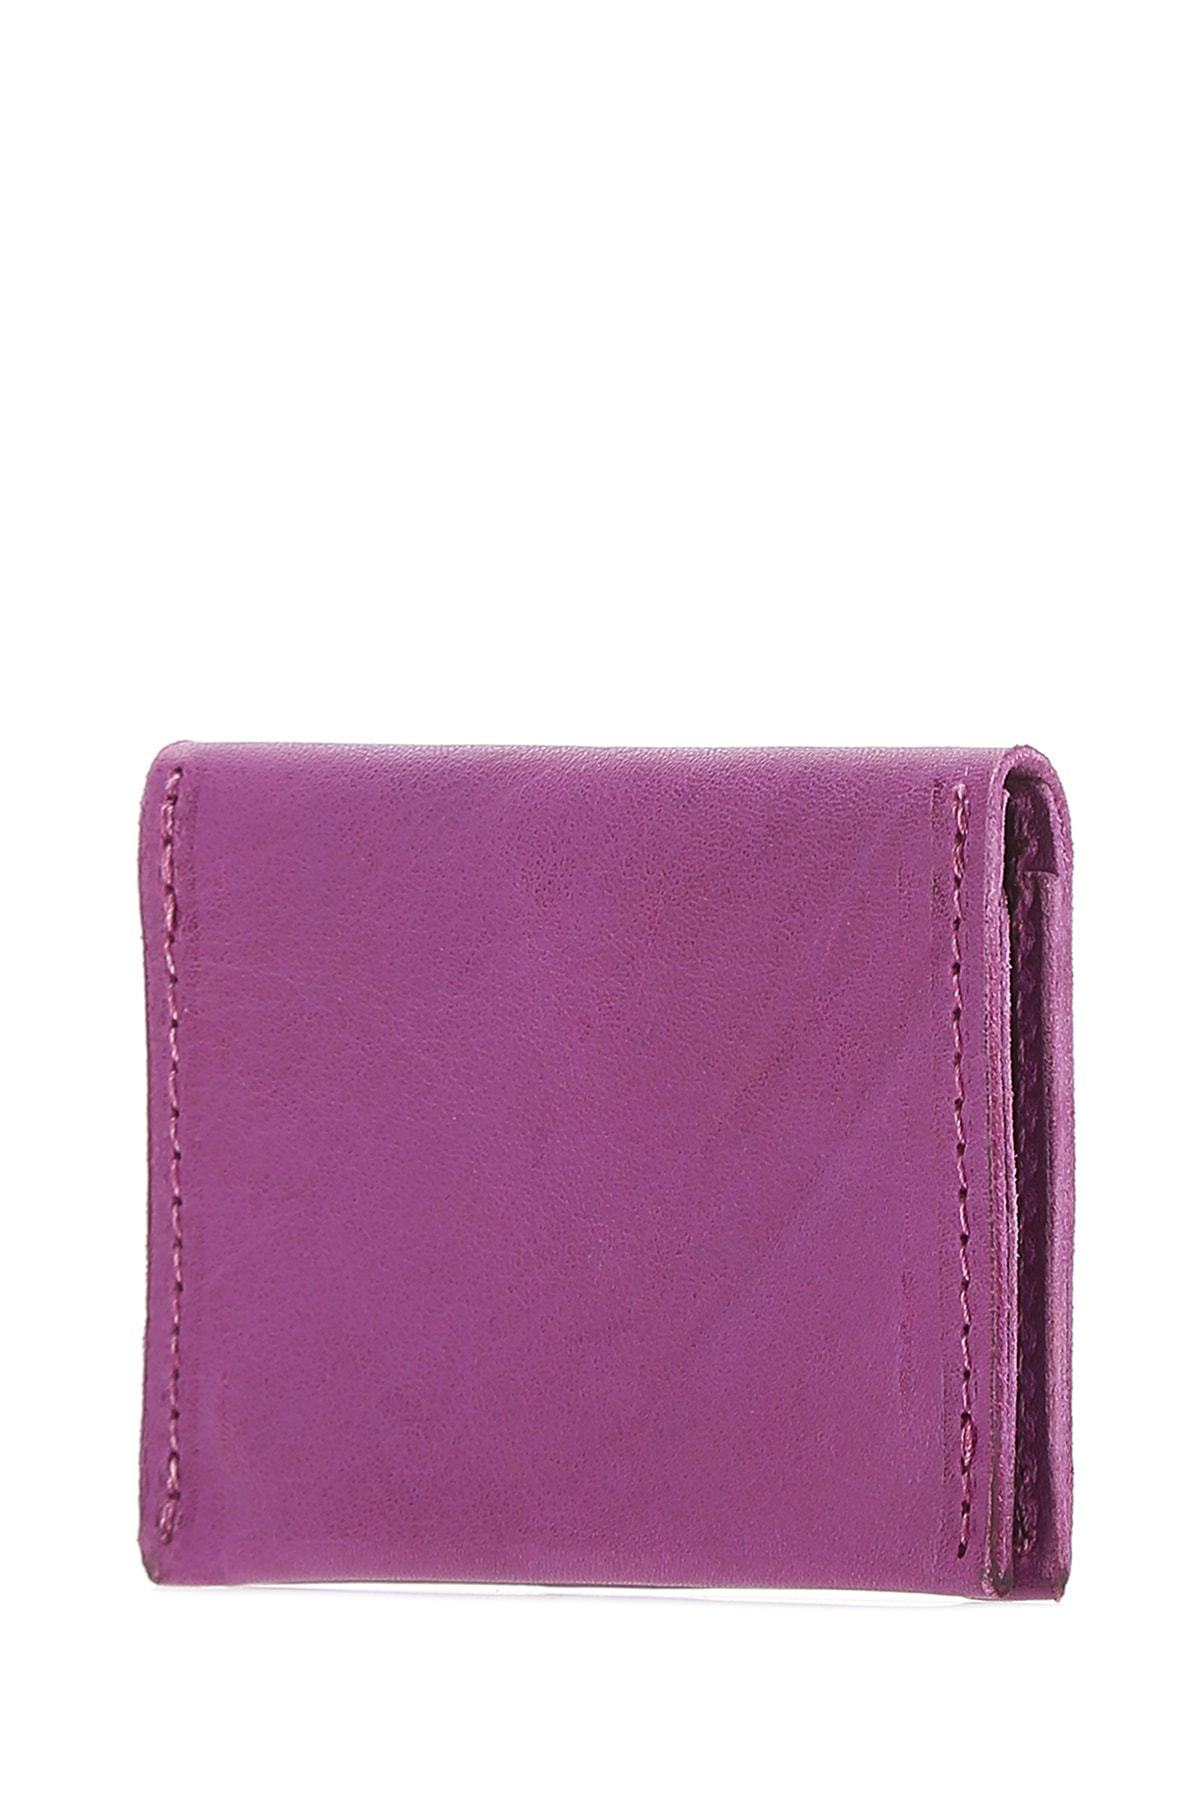 shop guidi wallets & card holders